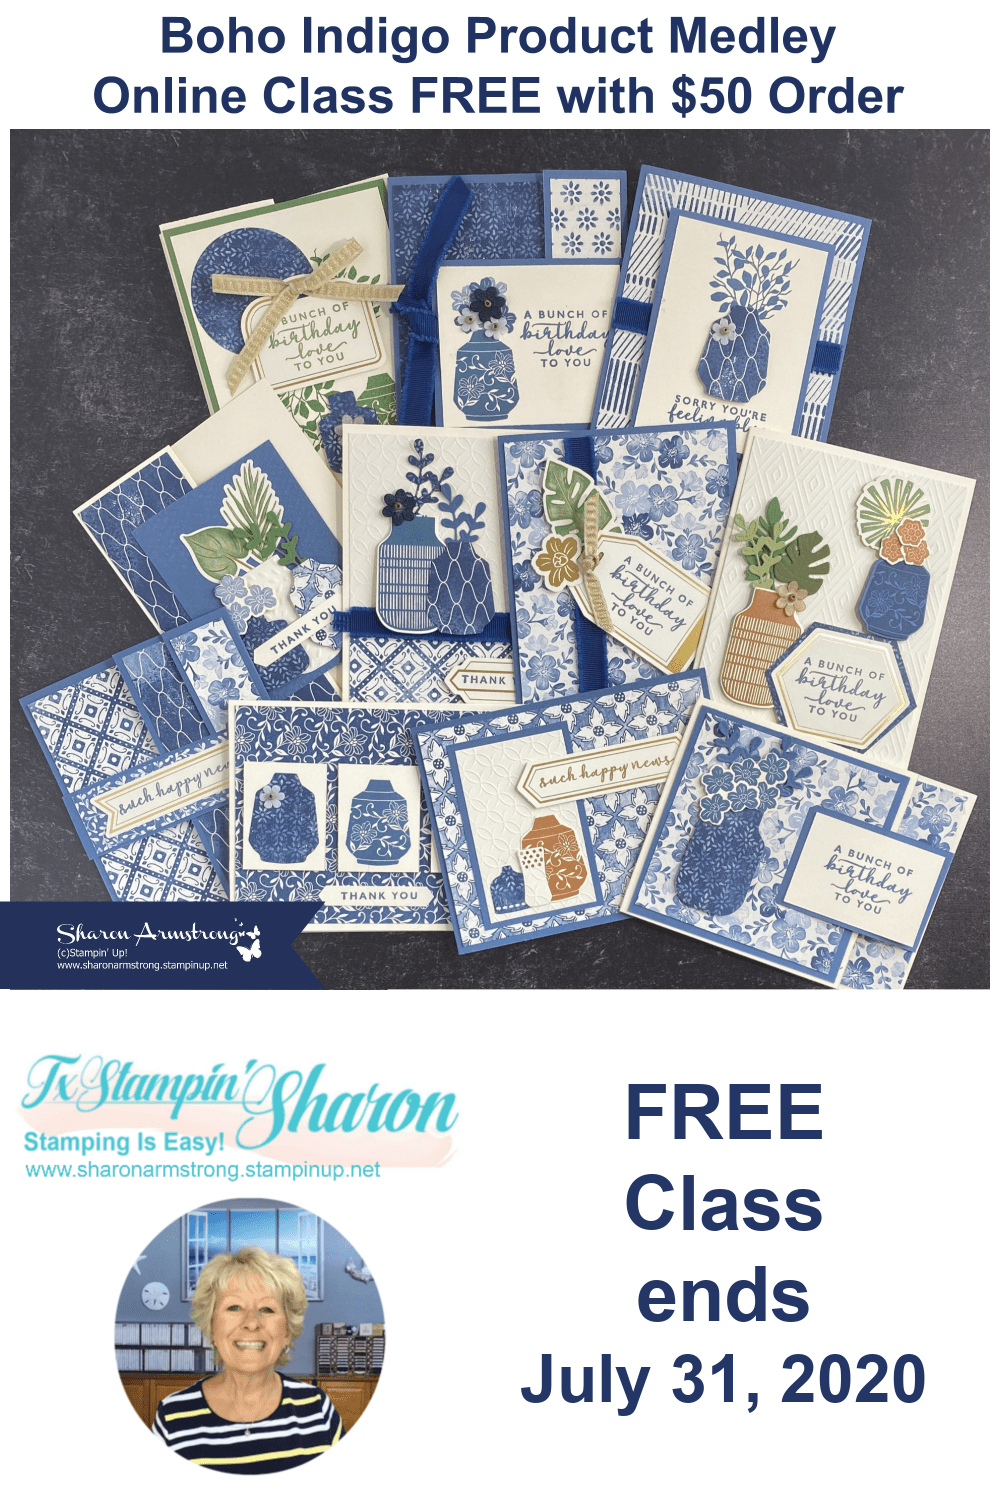 It's a new month so there is a new card making class available to you. For July 2020 it's the Boho Indigo card making class that you can get for free with a minimum purchase until July 31, 2020. Learn more at www.txstampin.com #cardmakingclass #cardmakingclassesvideotutorials #cardmakingclassideas #cardmakingtutorials #cardvideos #sharonarmstrong #txstampin